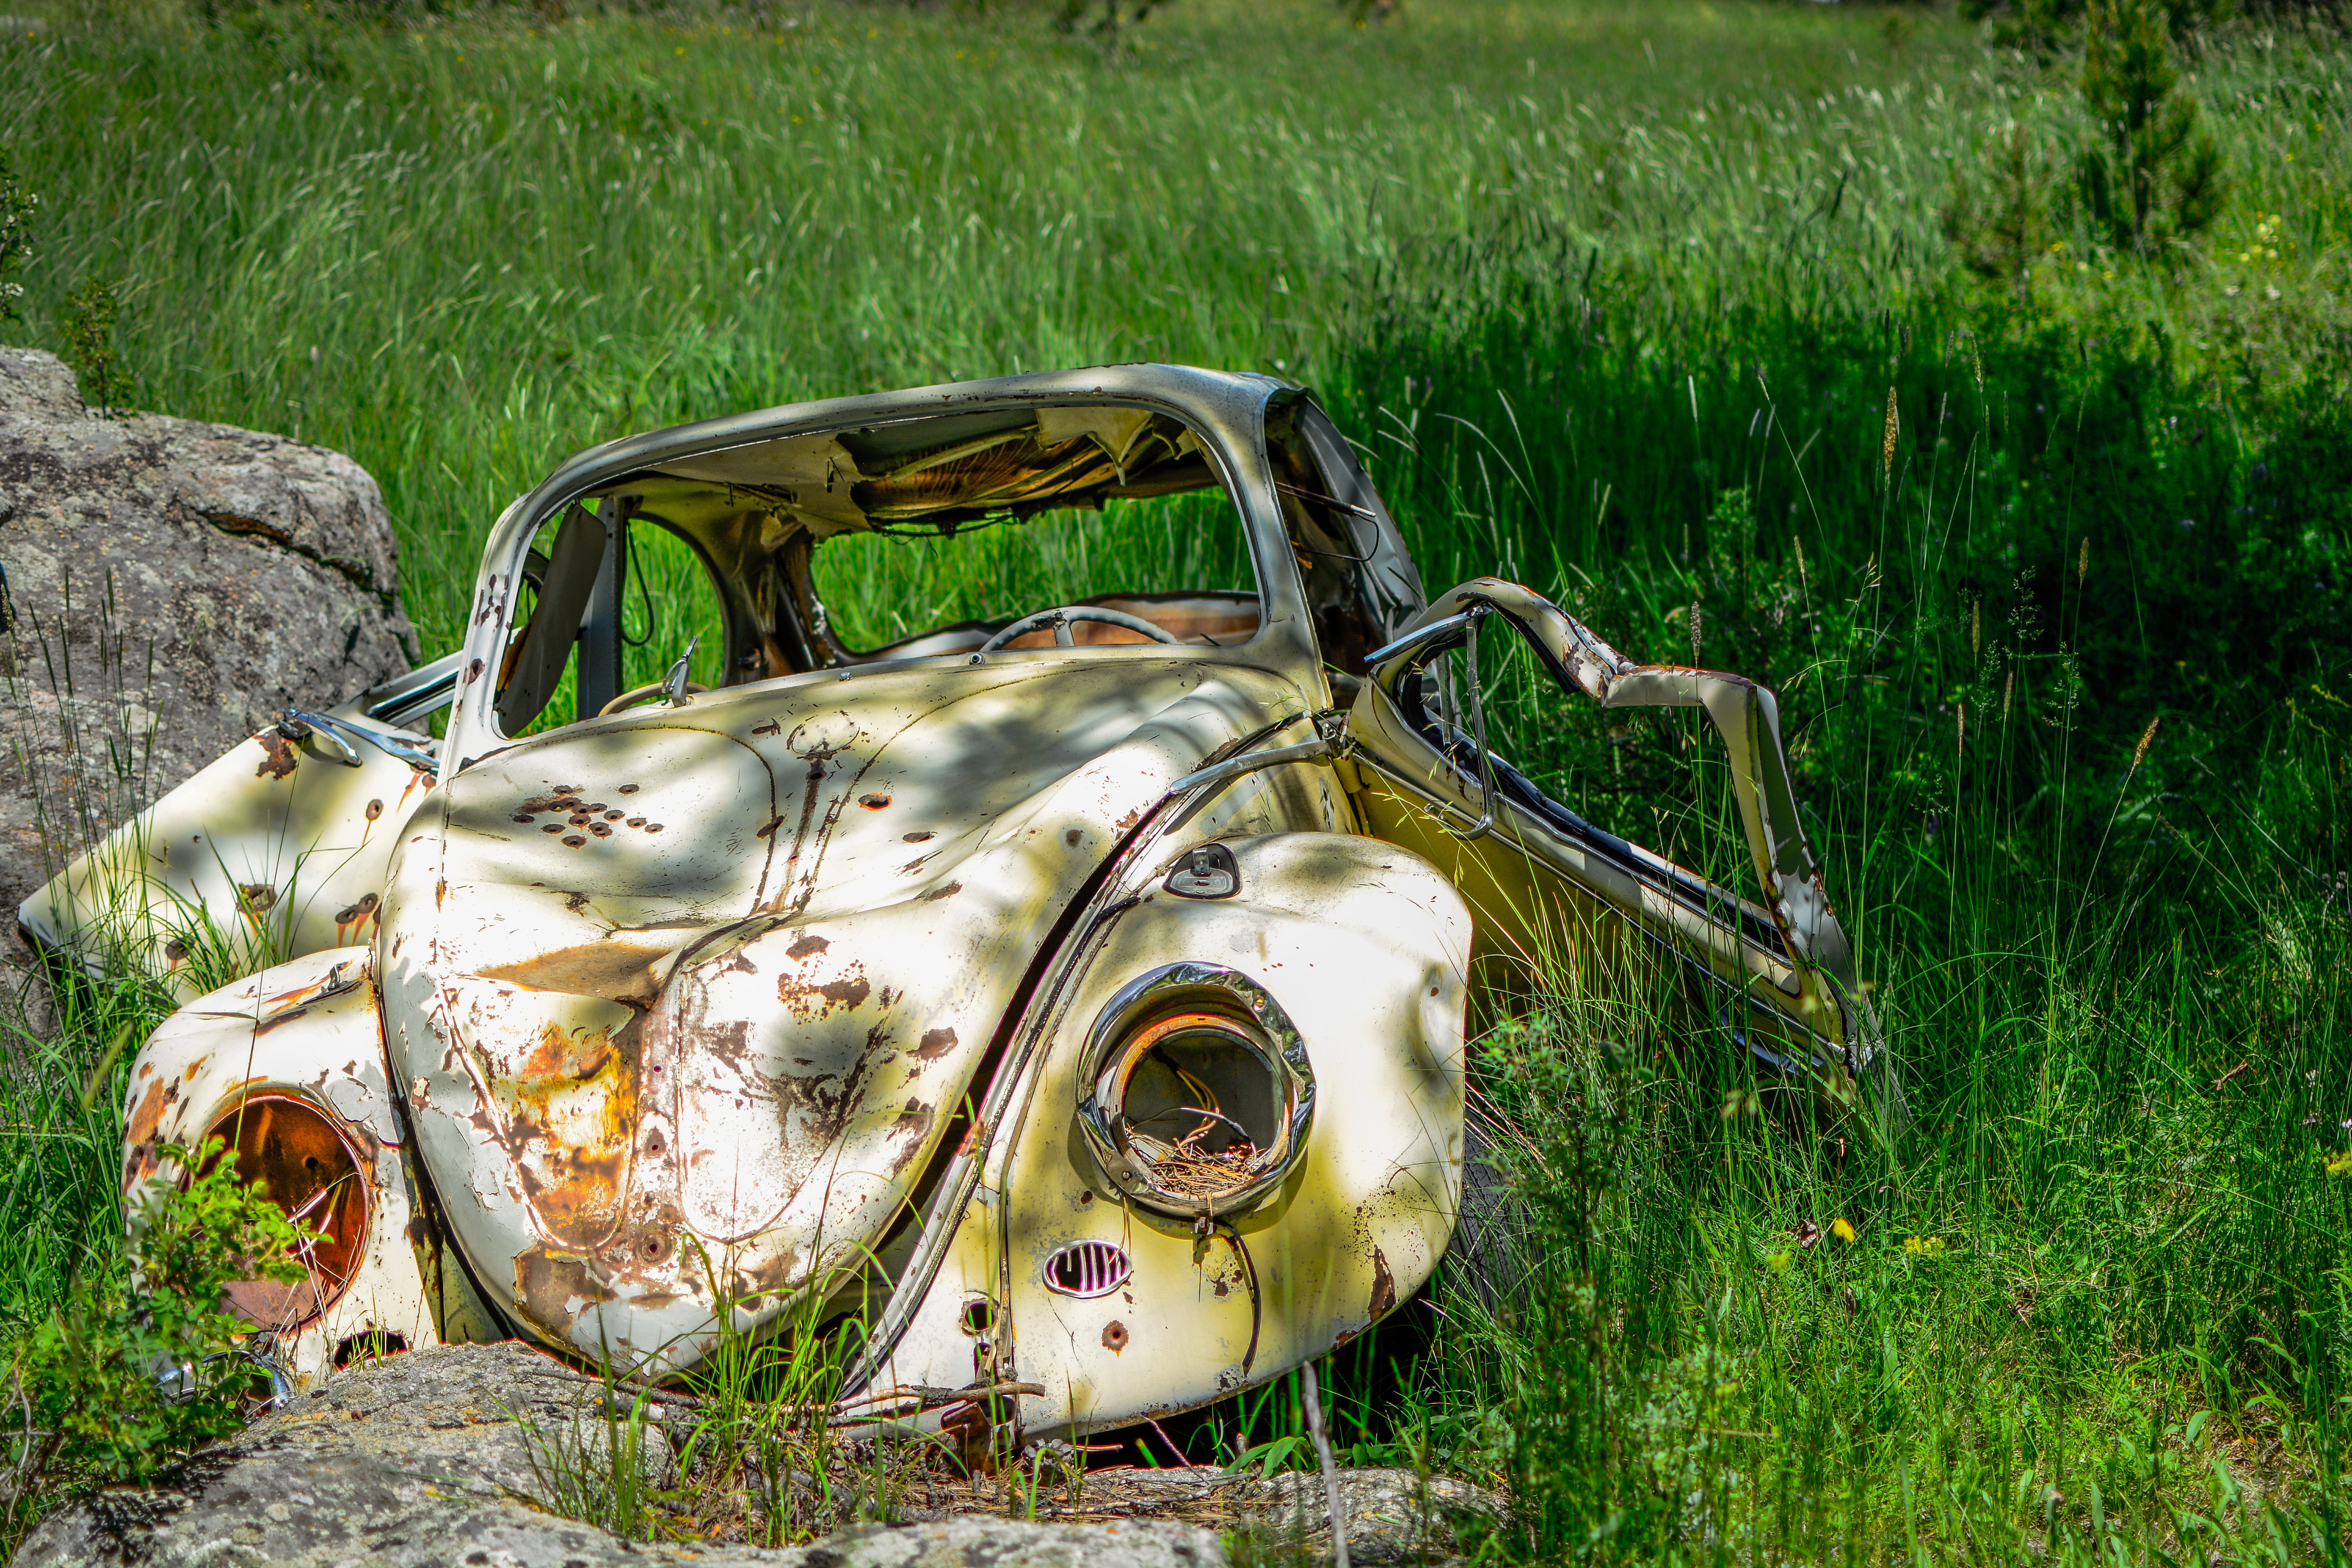 Rusted Volkswagon bug abandoned in the field.